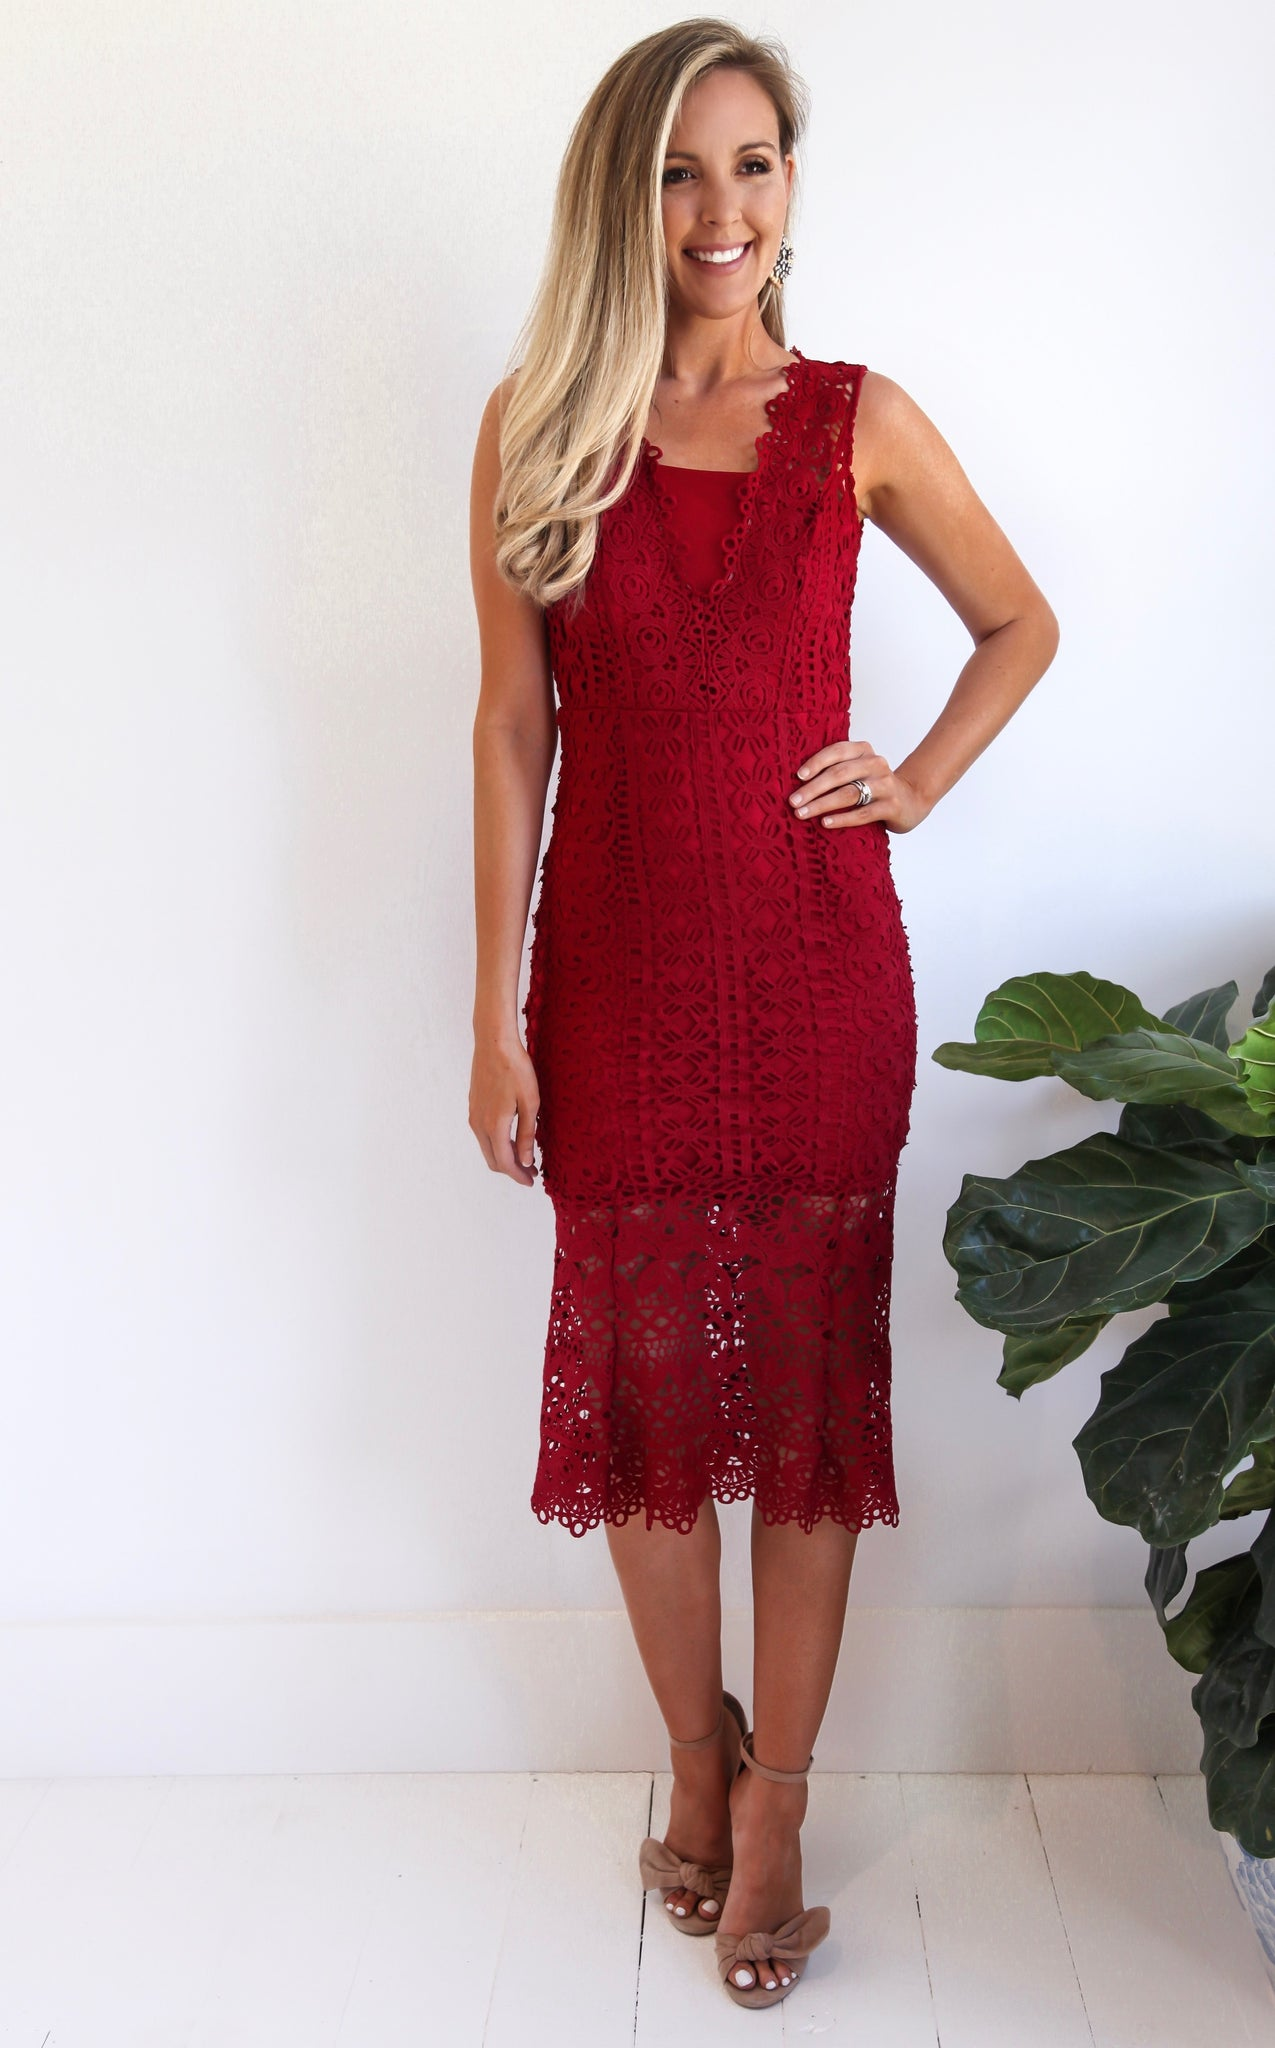 ELLE LAIN - DIANA LACE DRESS